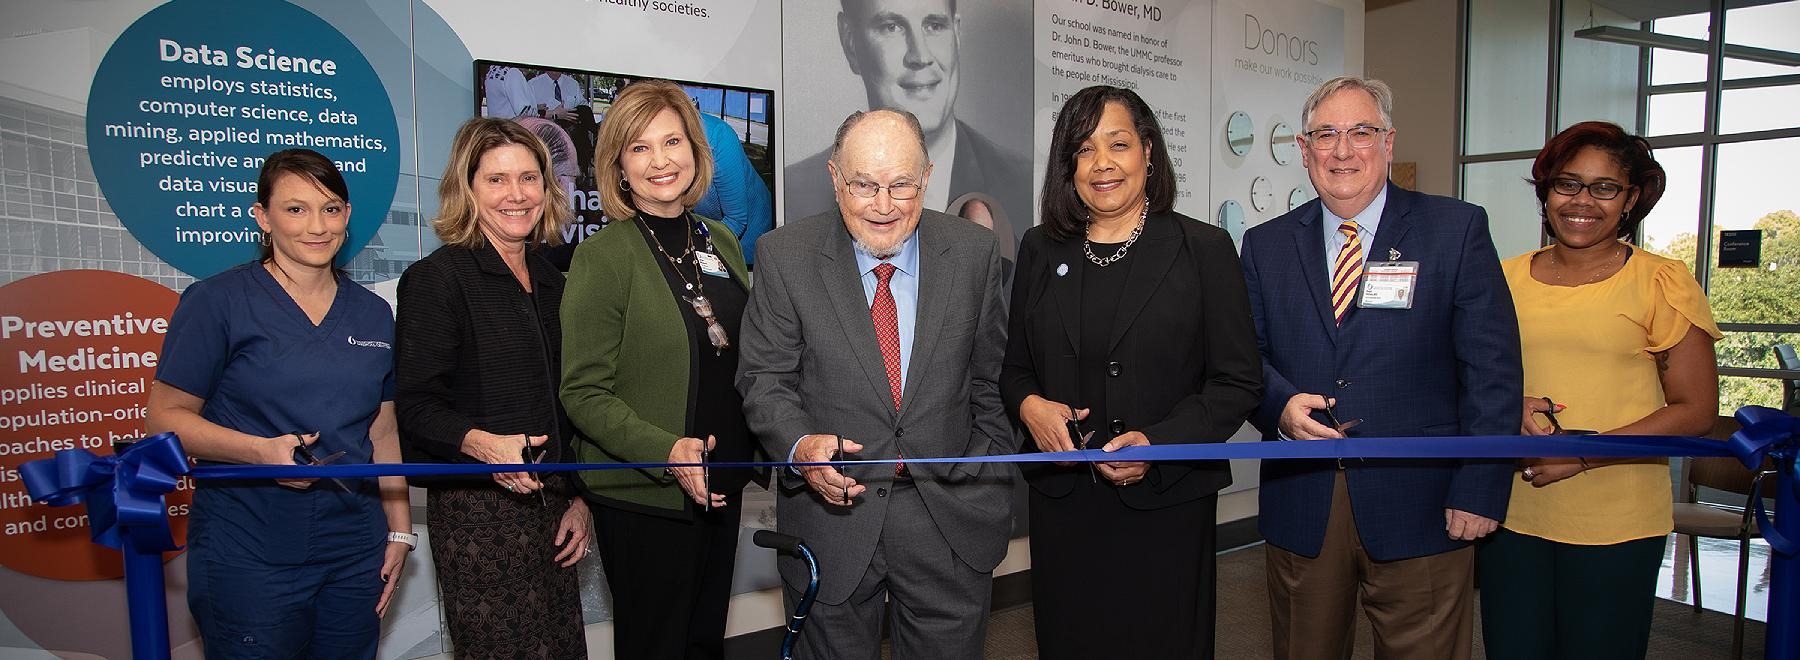 School of Populaition Health leadership cut ribbon on new space in the Translational Research Center